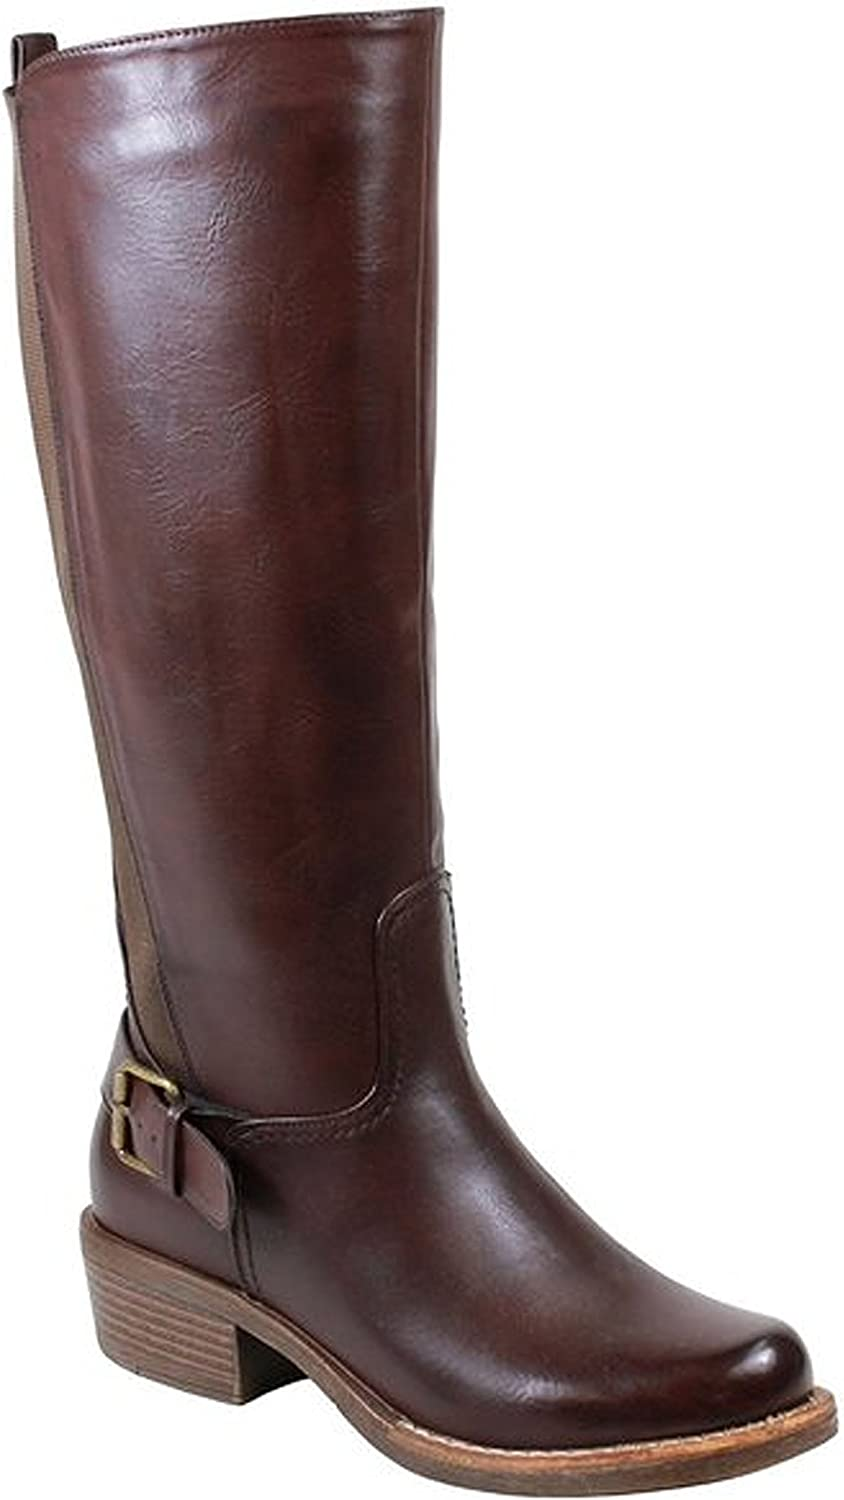 Reneeze MONA-02 Womens Sexy Knee-high, Boots with Strap - Brown